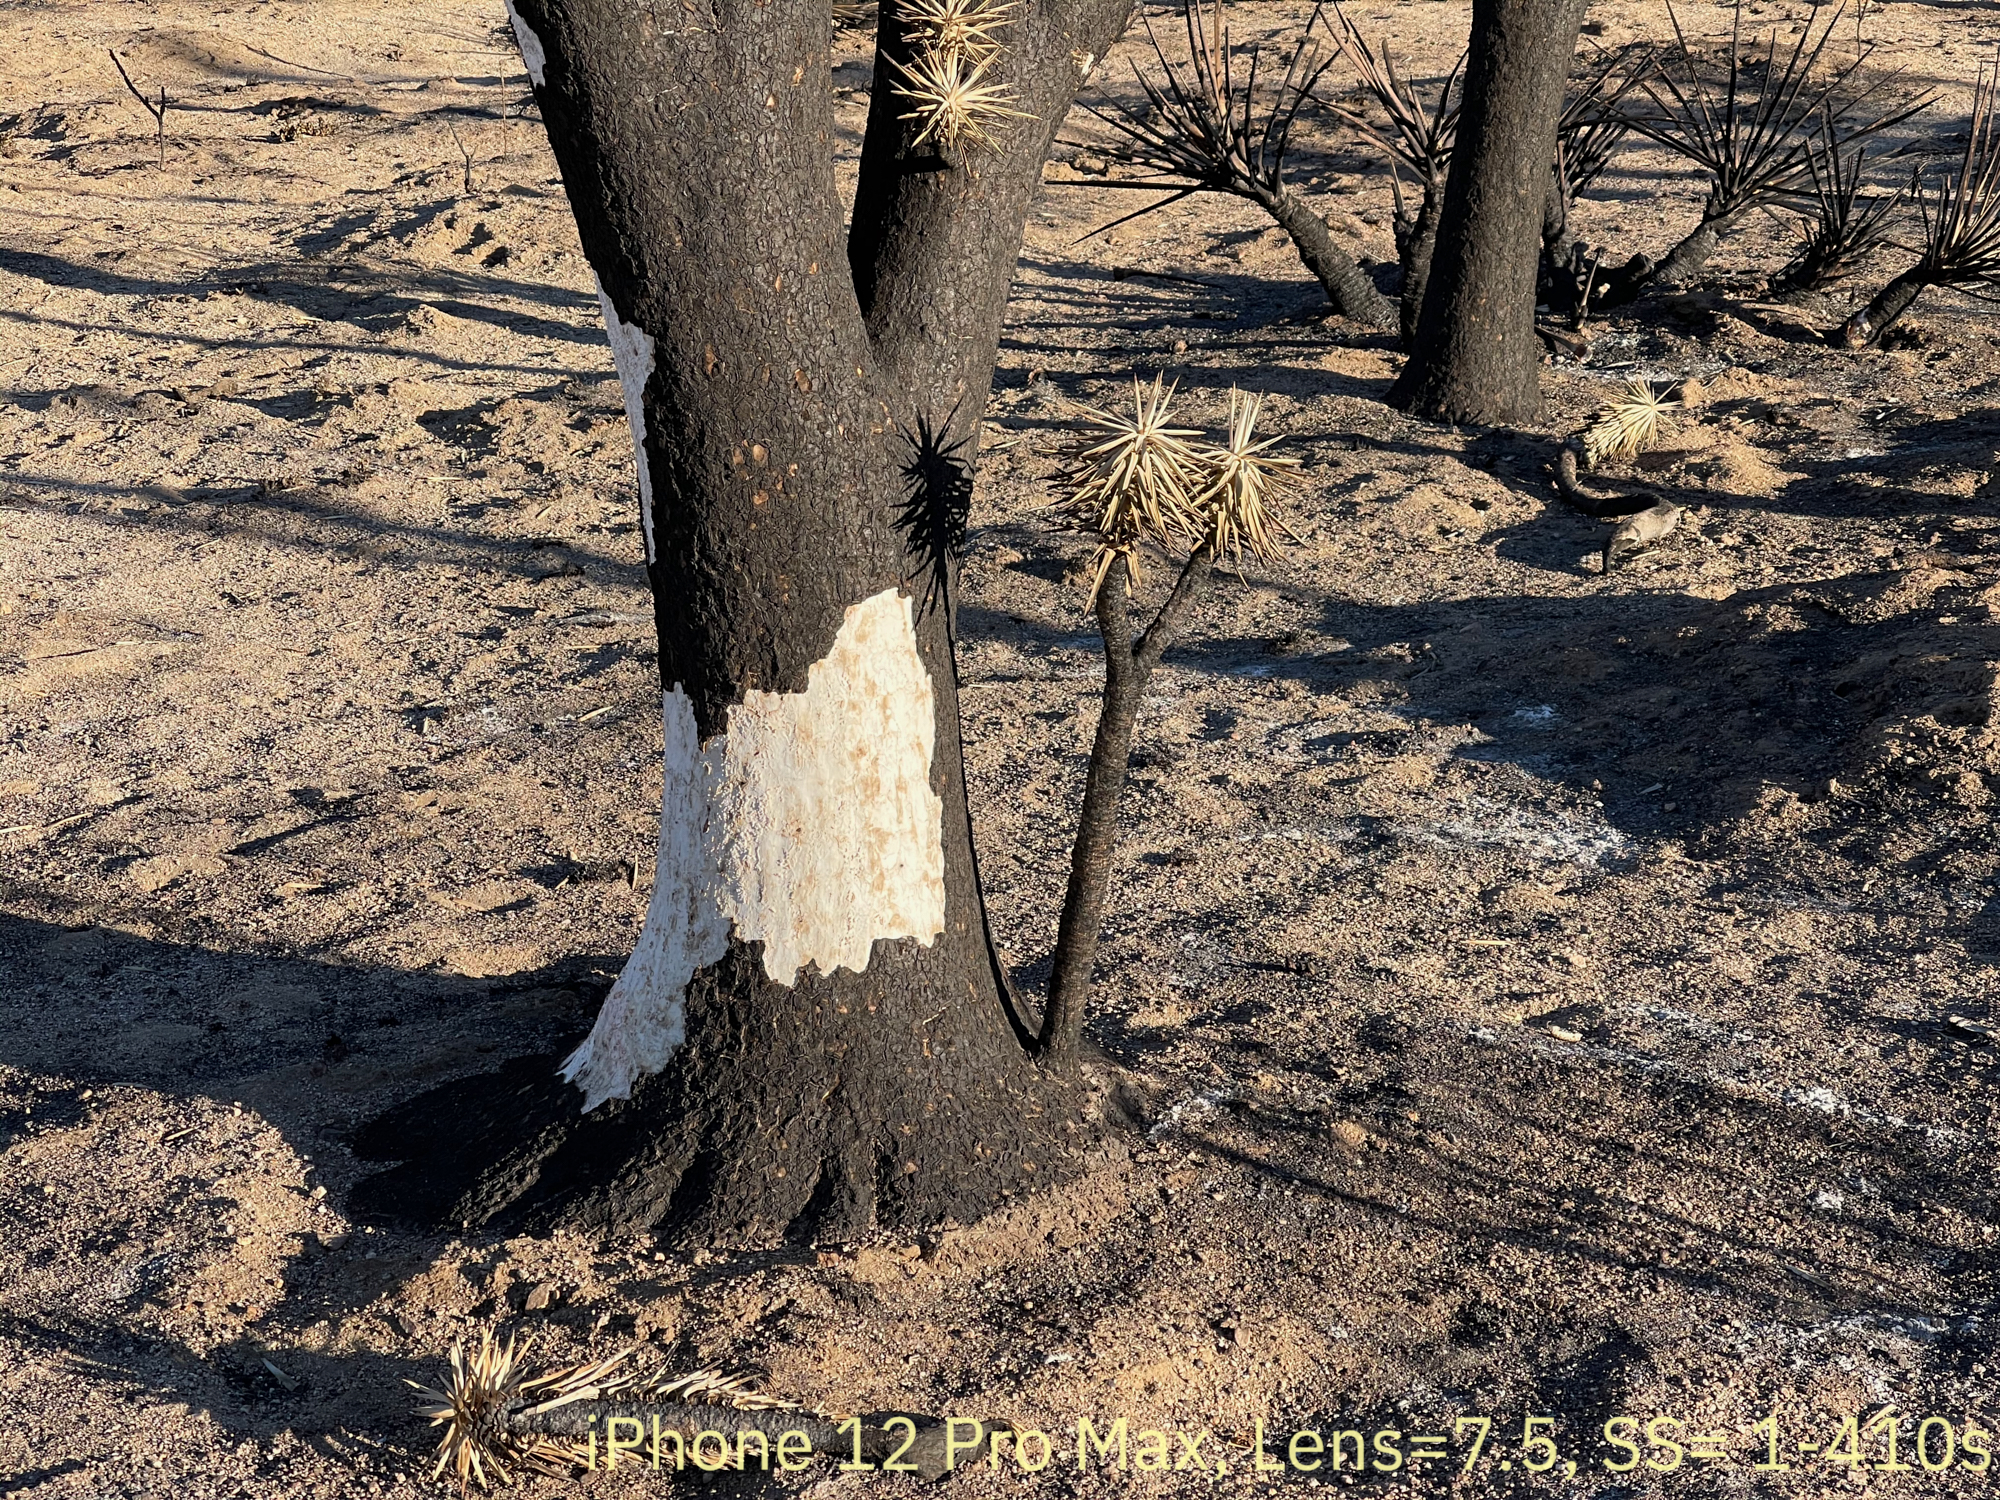 iPhone 11 vs 12 In the Burned Joshua Tree Forest